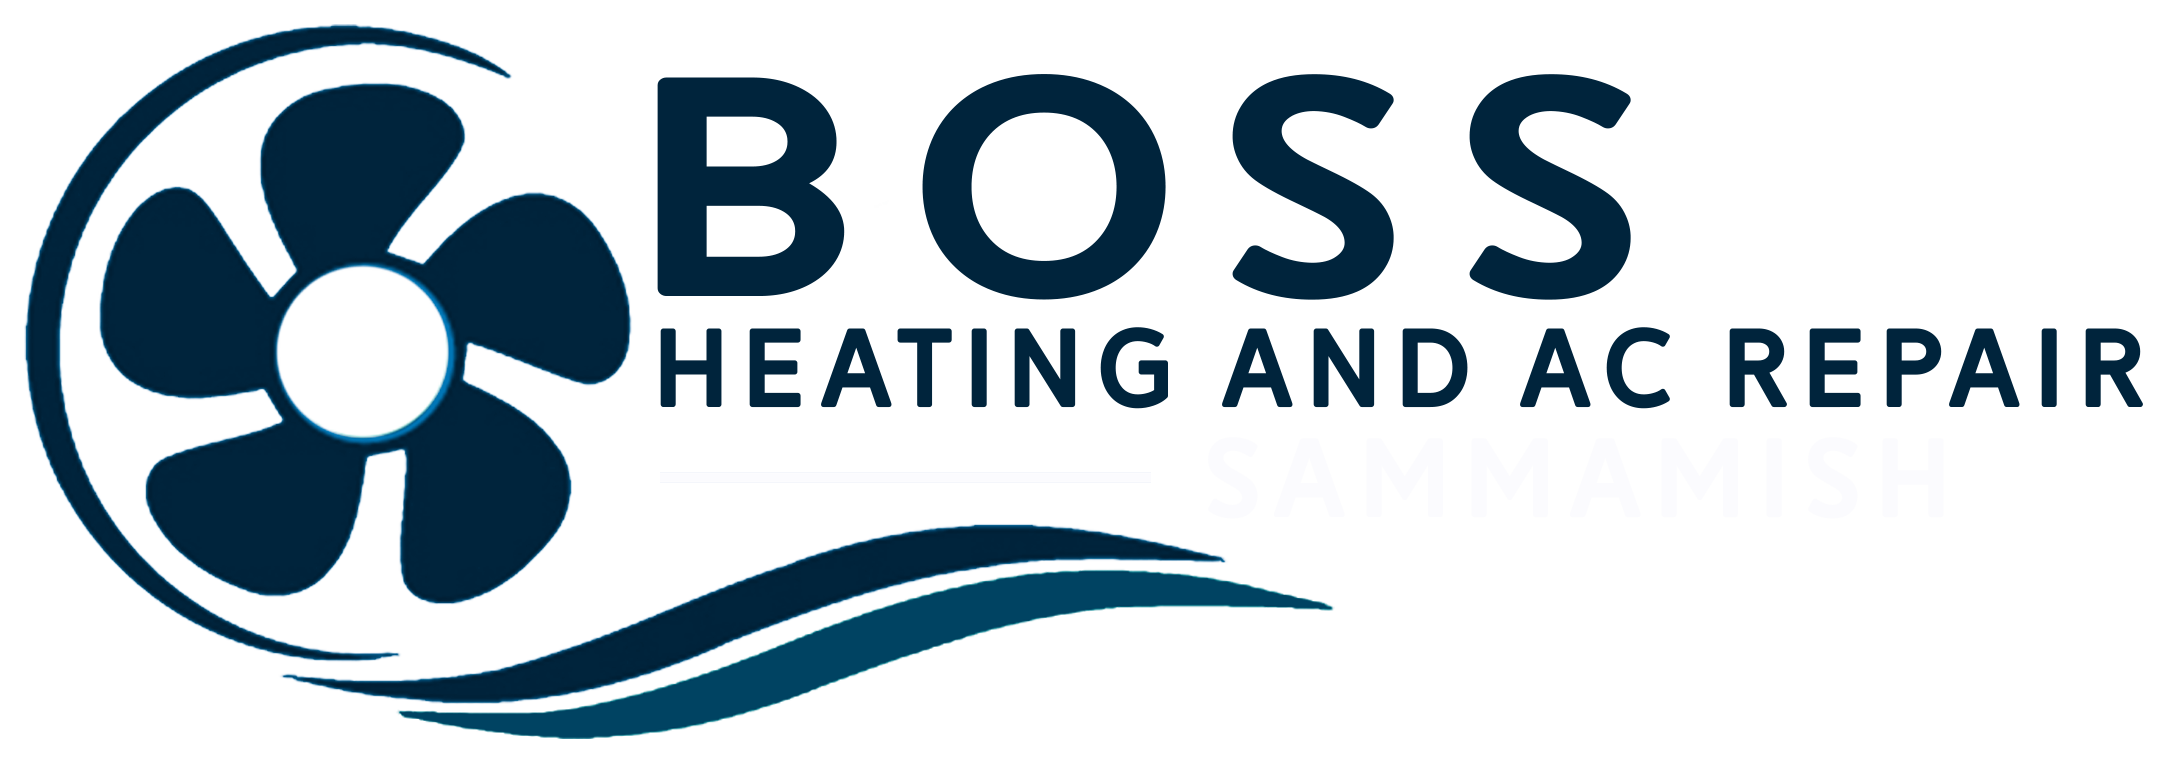 Welcome To Heating And Air Conditioning Sammamish We Proudly